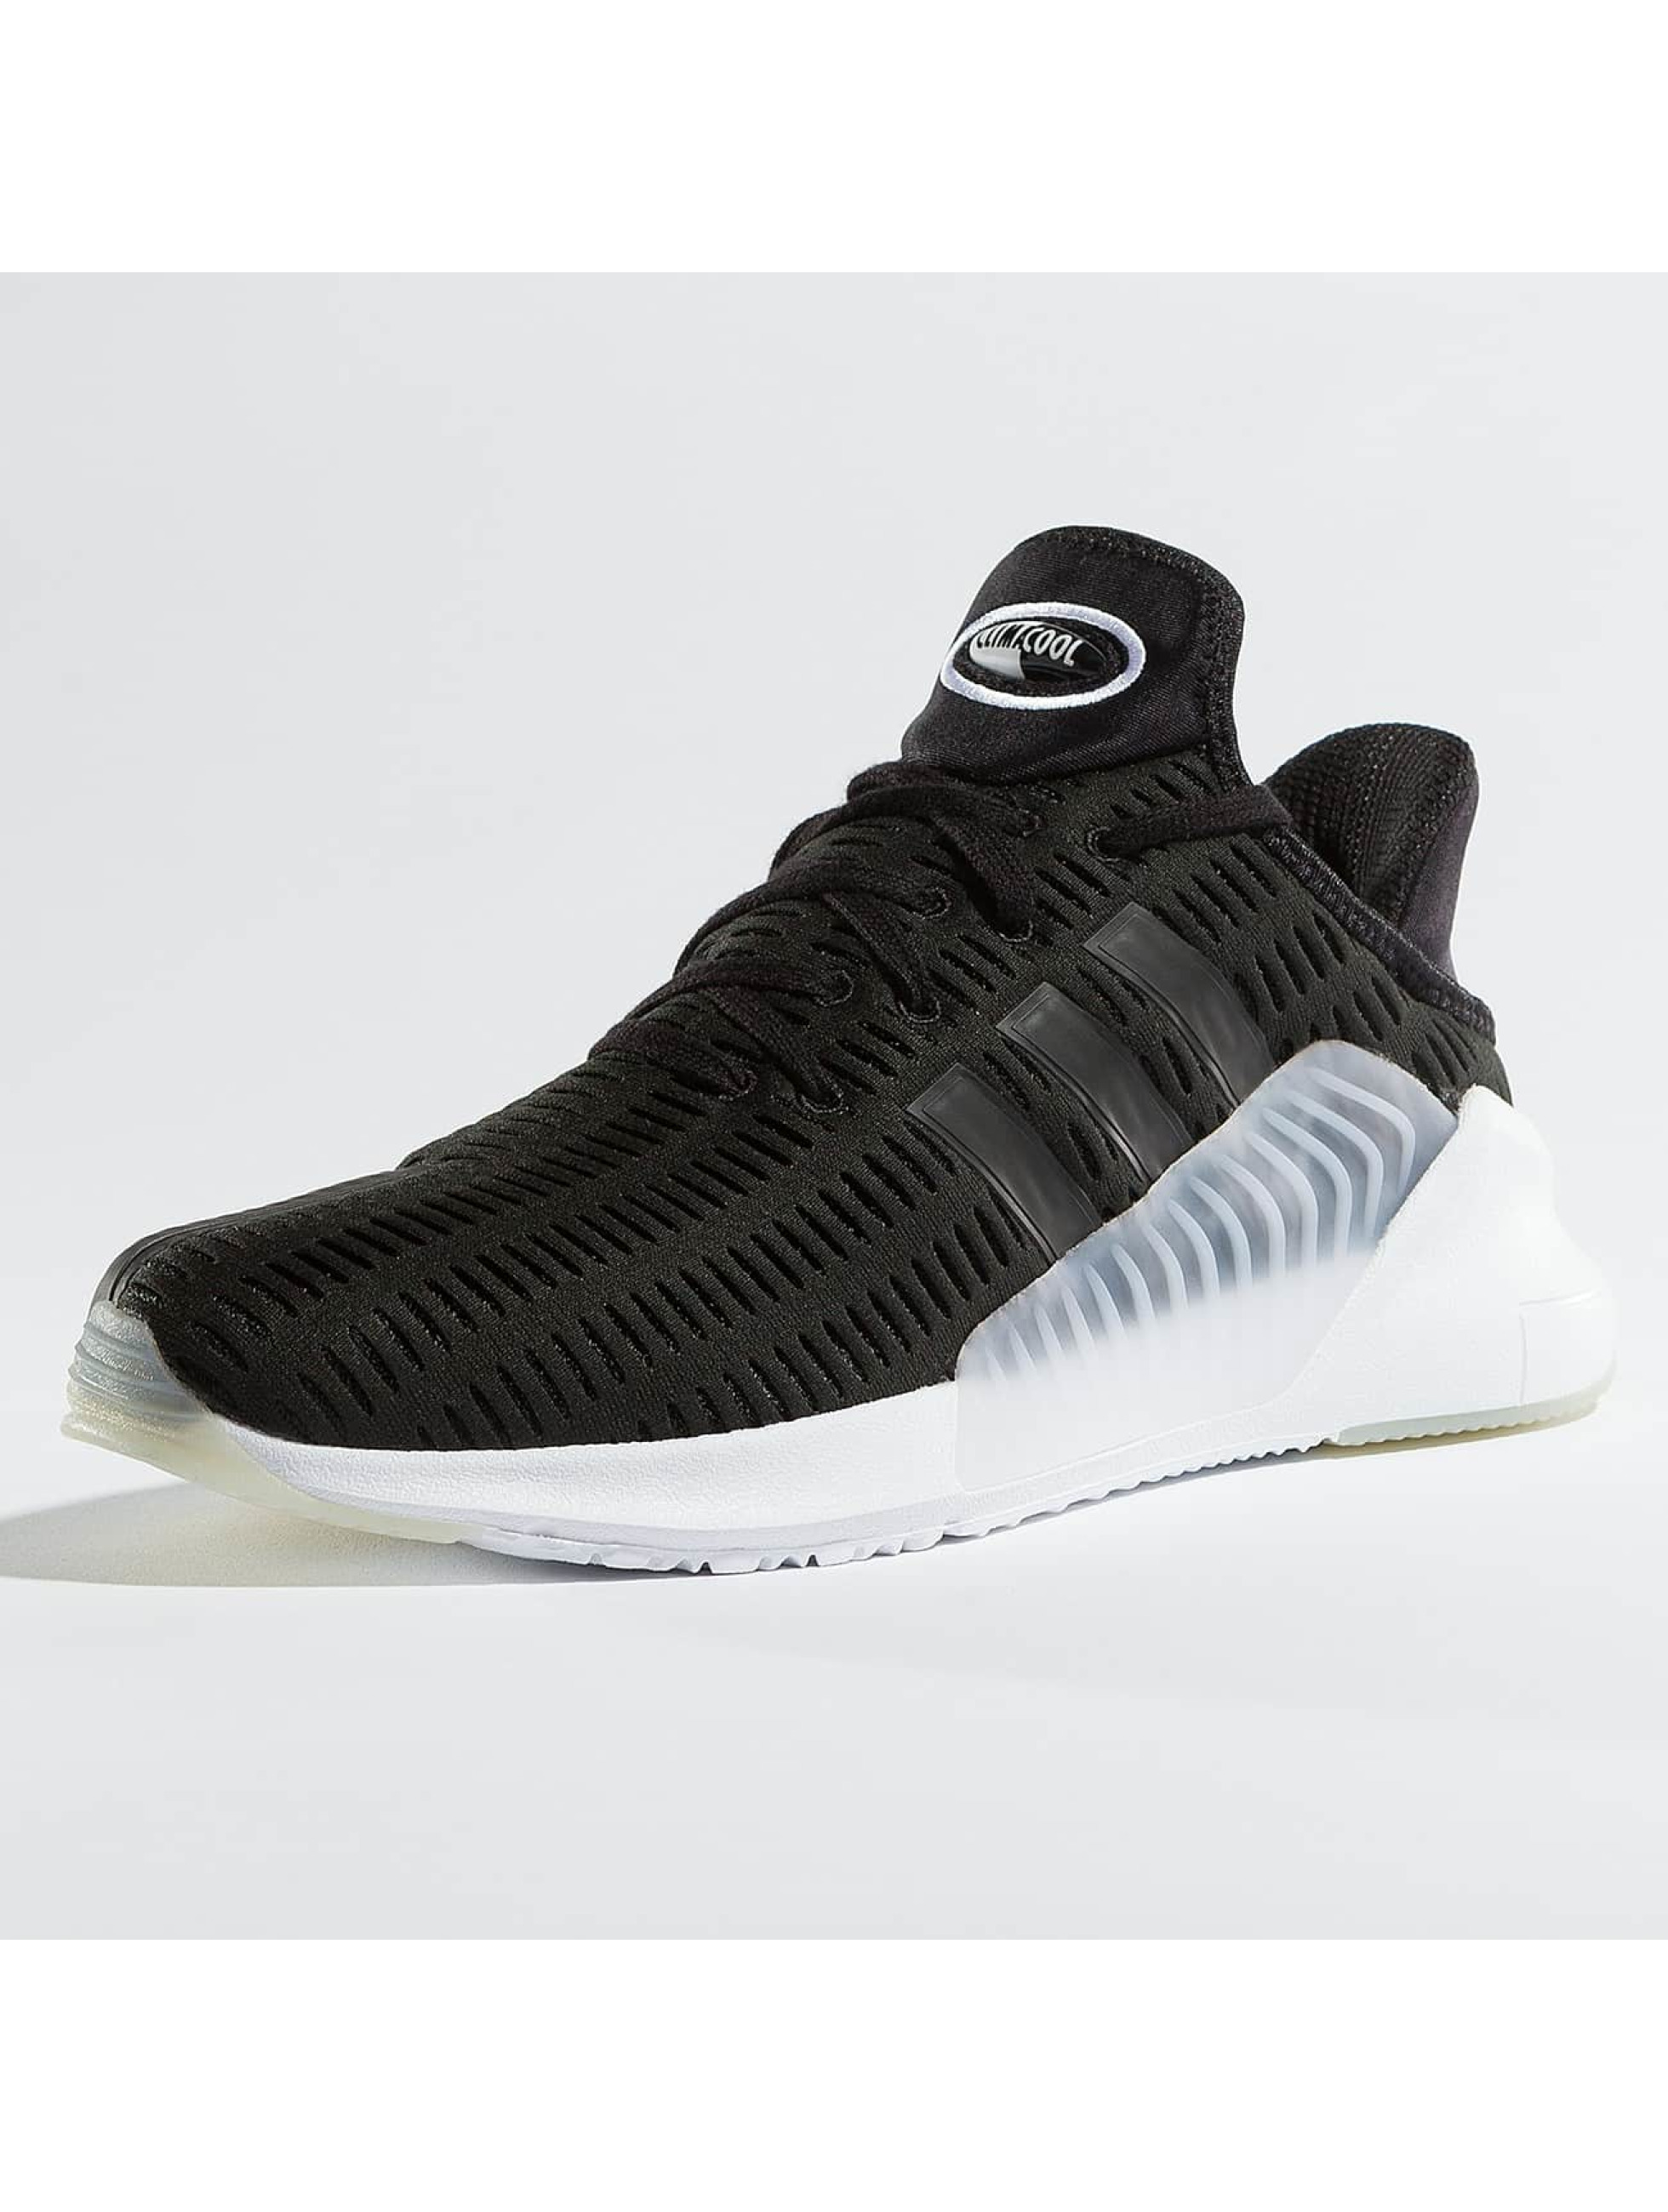 adidas Sneakers Climacool 02/17 black